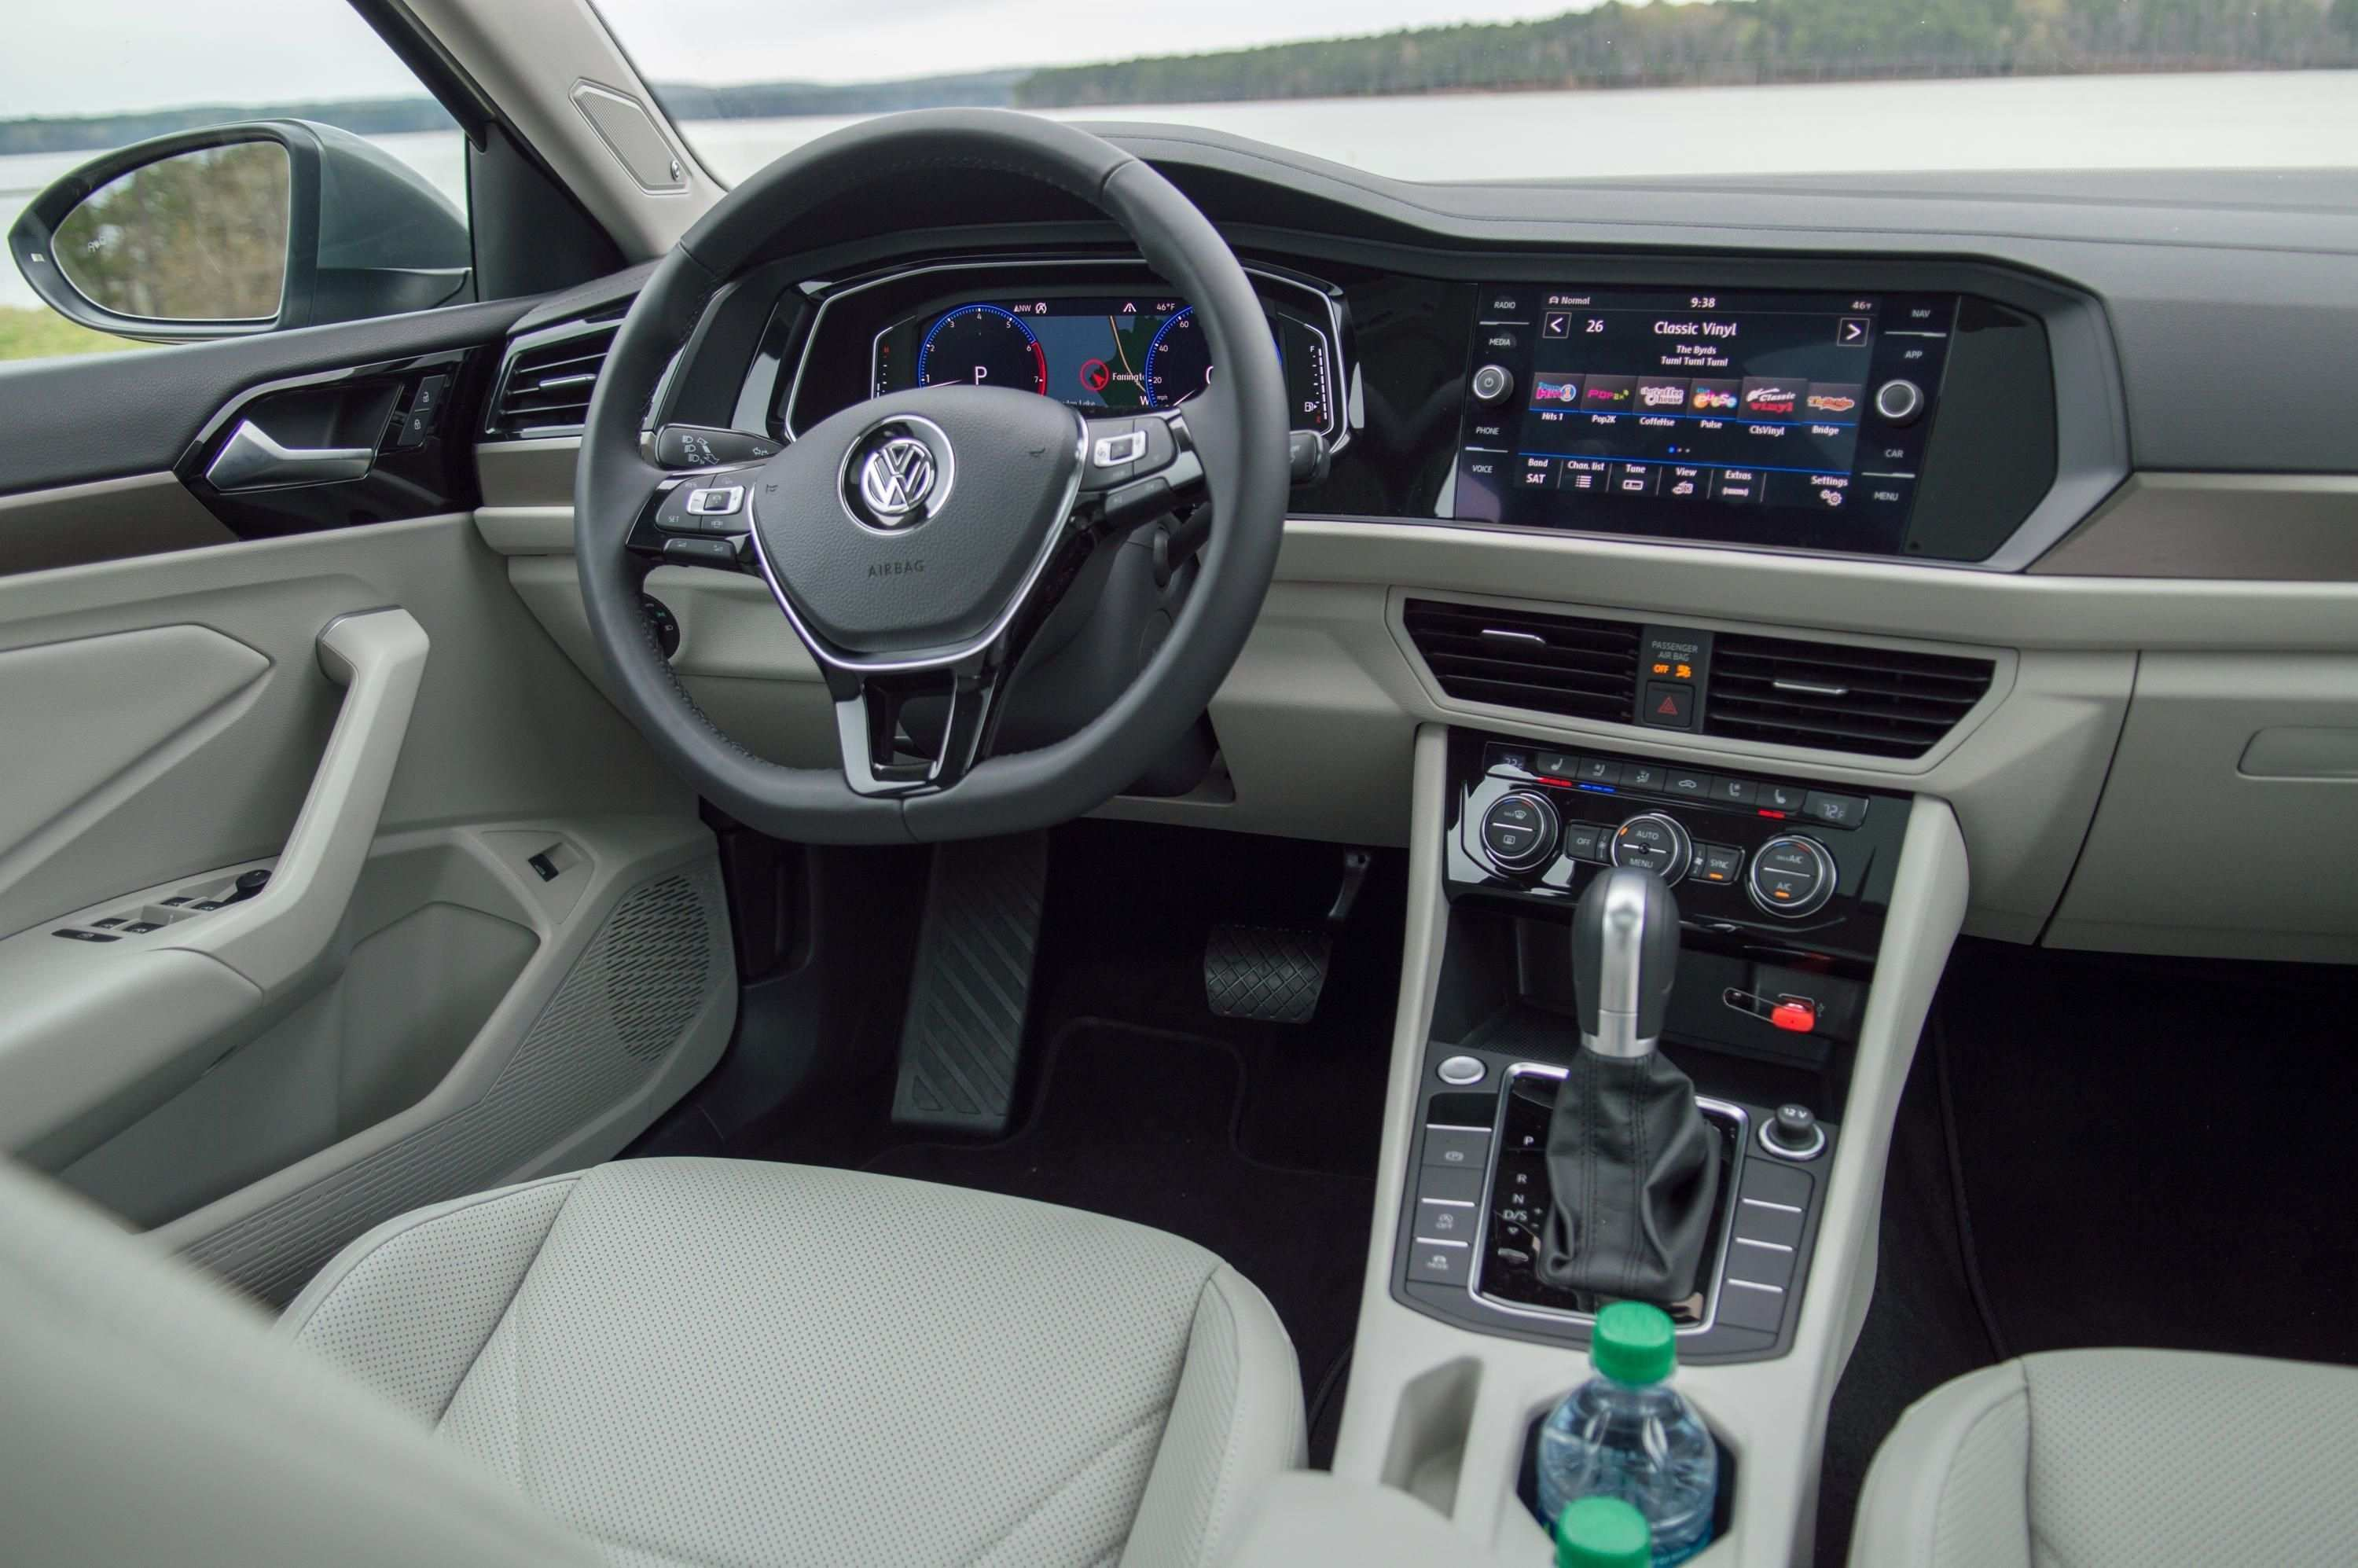 62 Concept of New Volkswagen Interior 2019 Specs Exterior with New Volkswagen Interior 2019 Specs